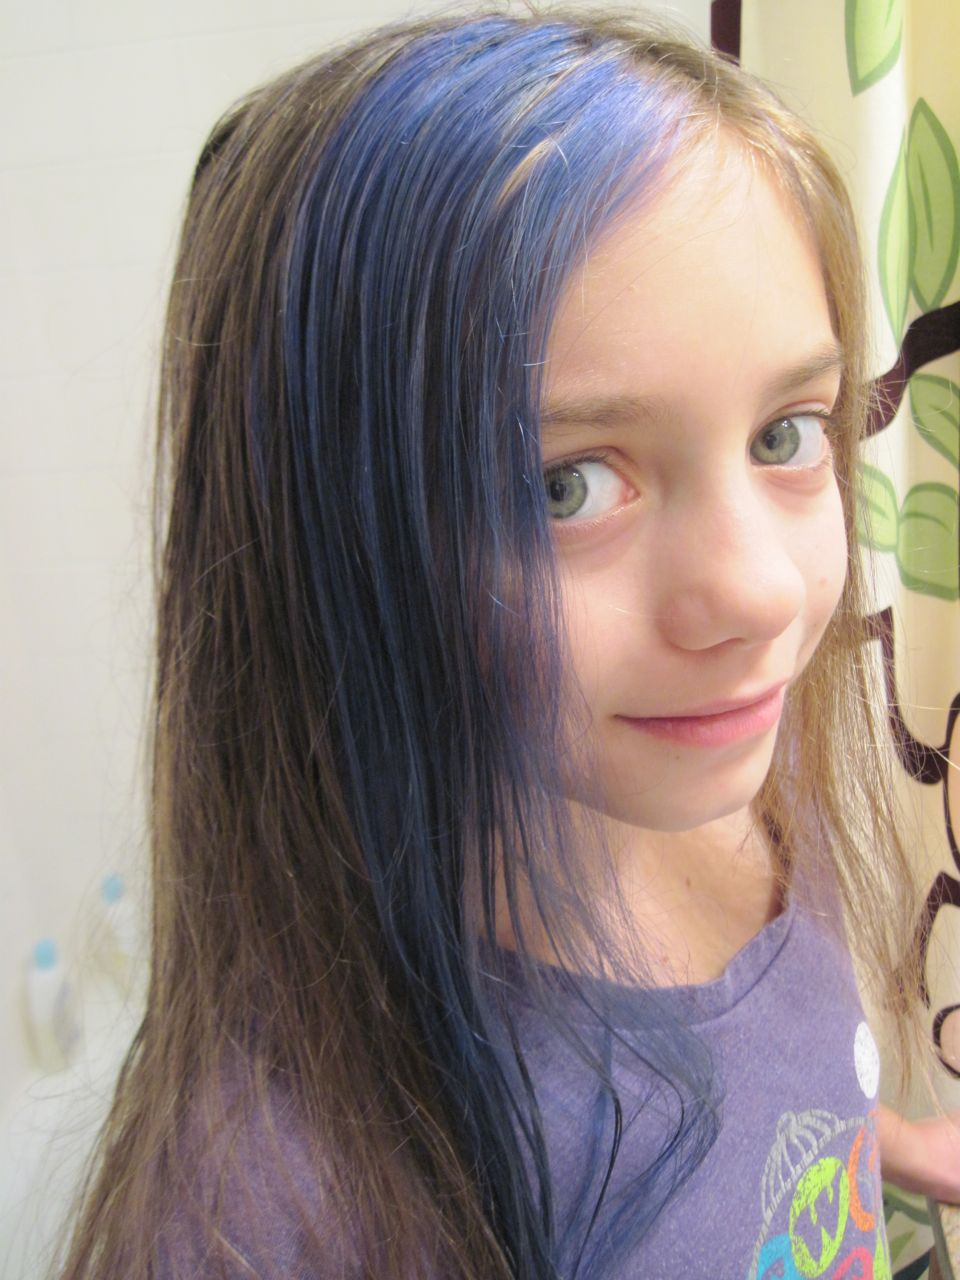 Self expression or it\'s only hair | The Green Mangoes Blog